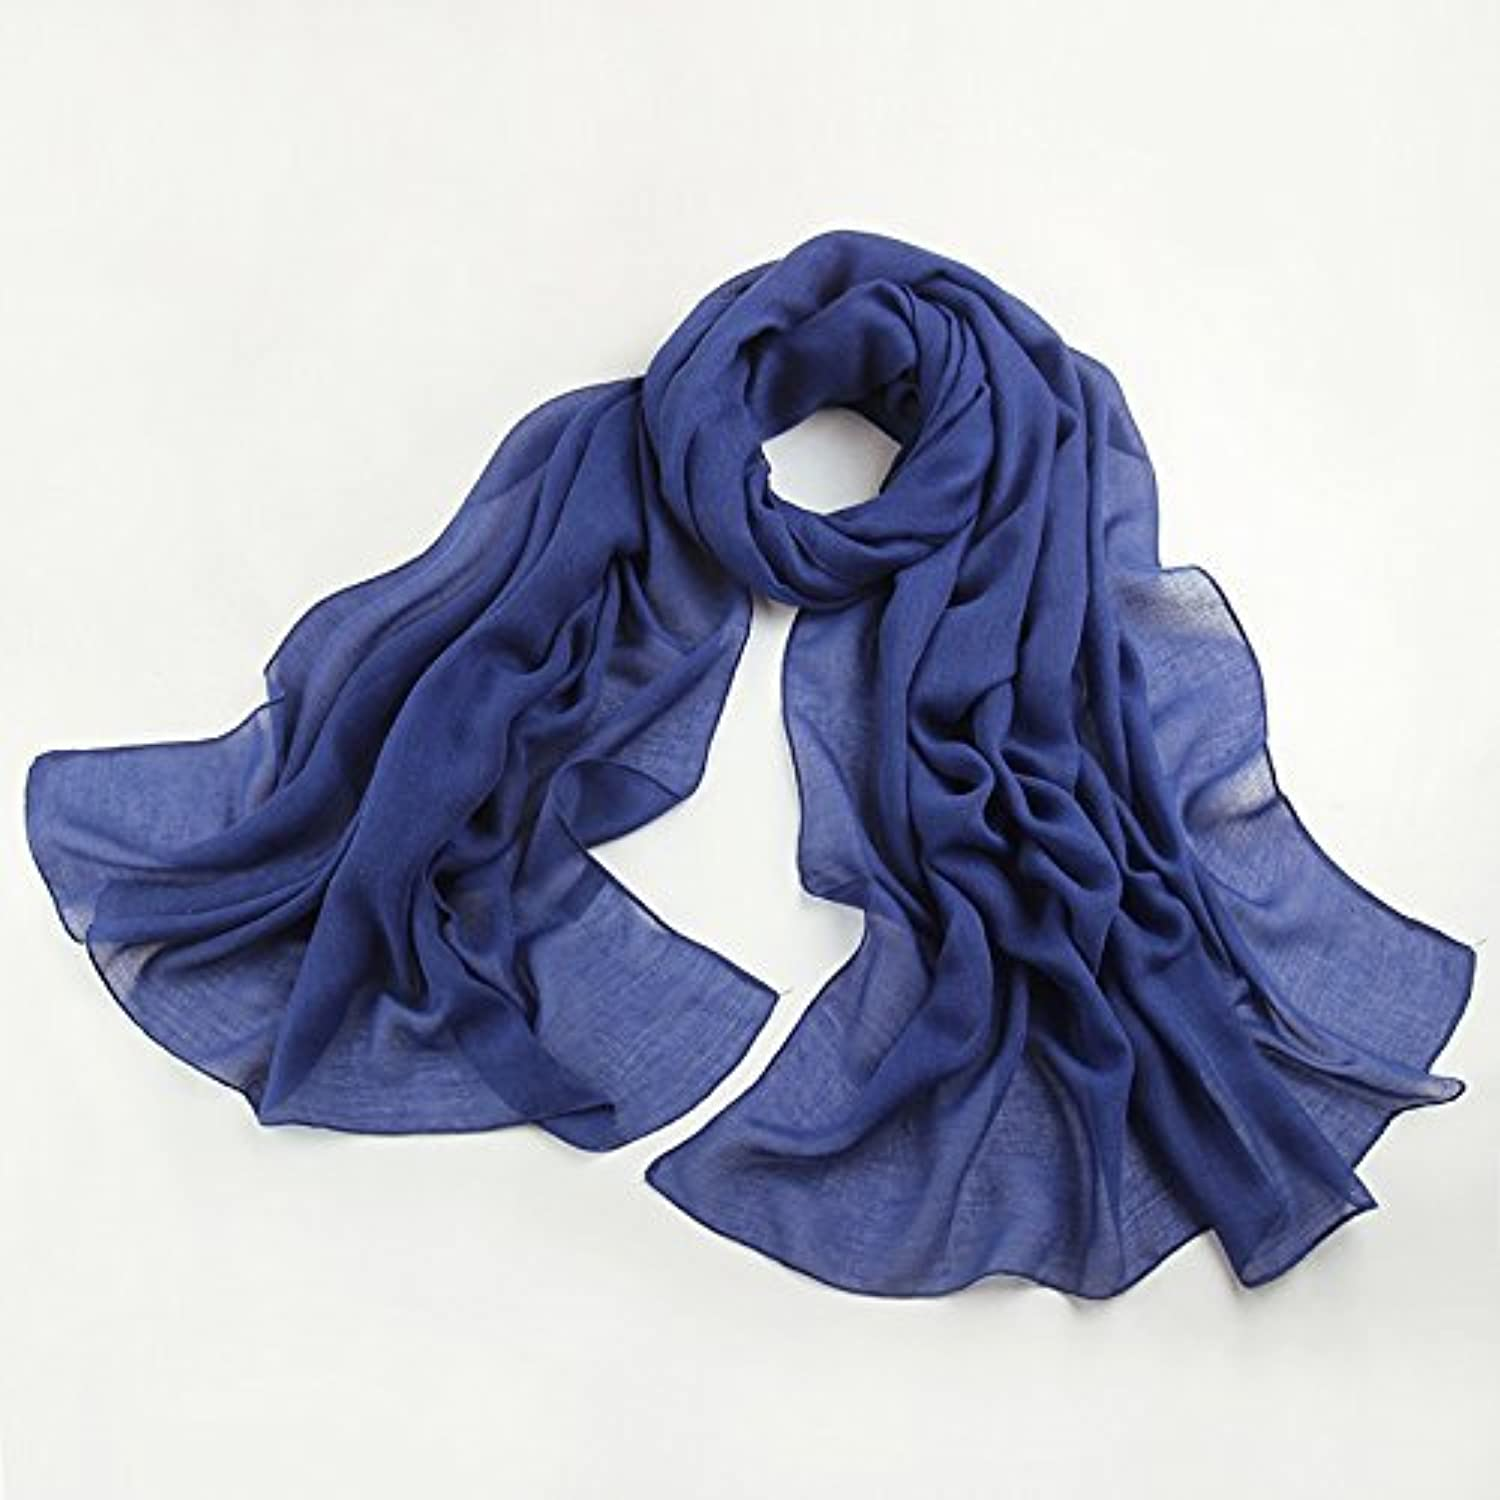 DIDIDD Scarfthe summer spring and autumn sun solid mianma scarf lady airconditioned warm shawl